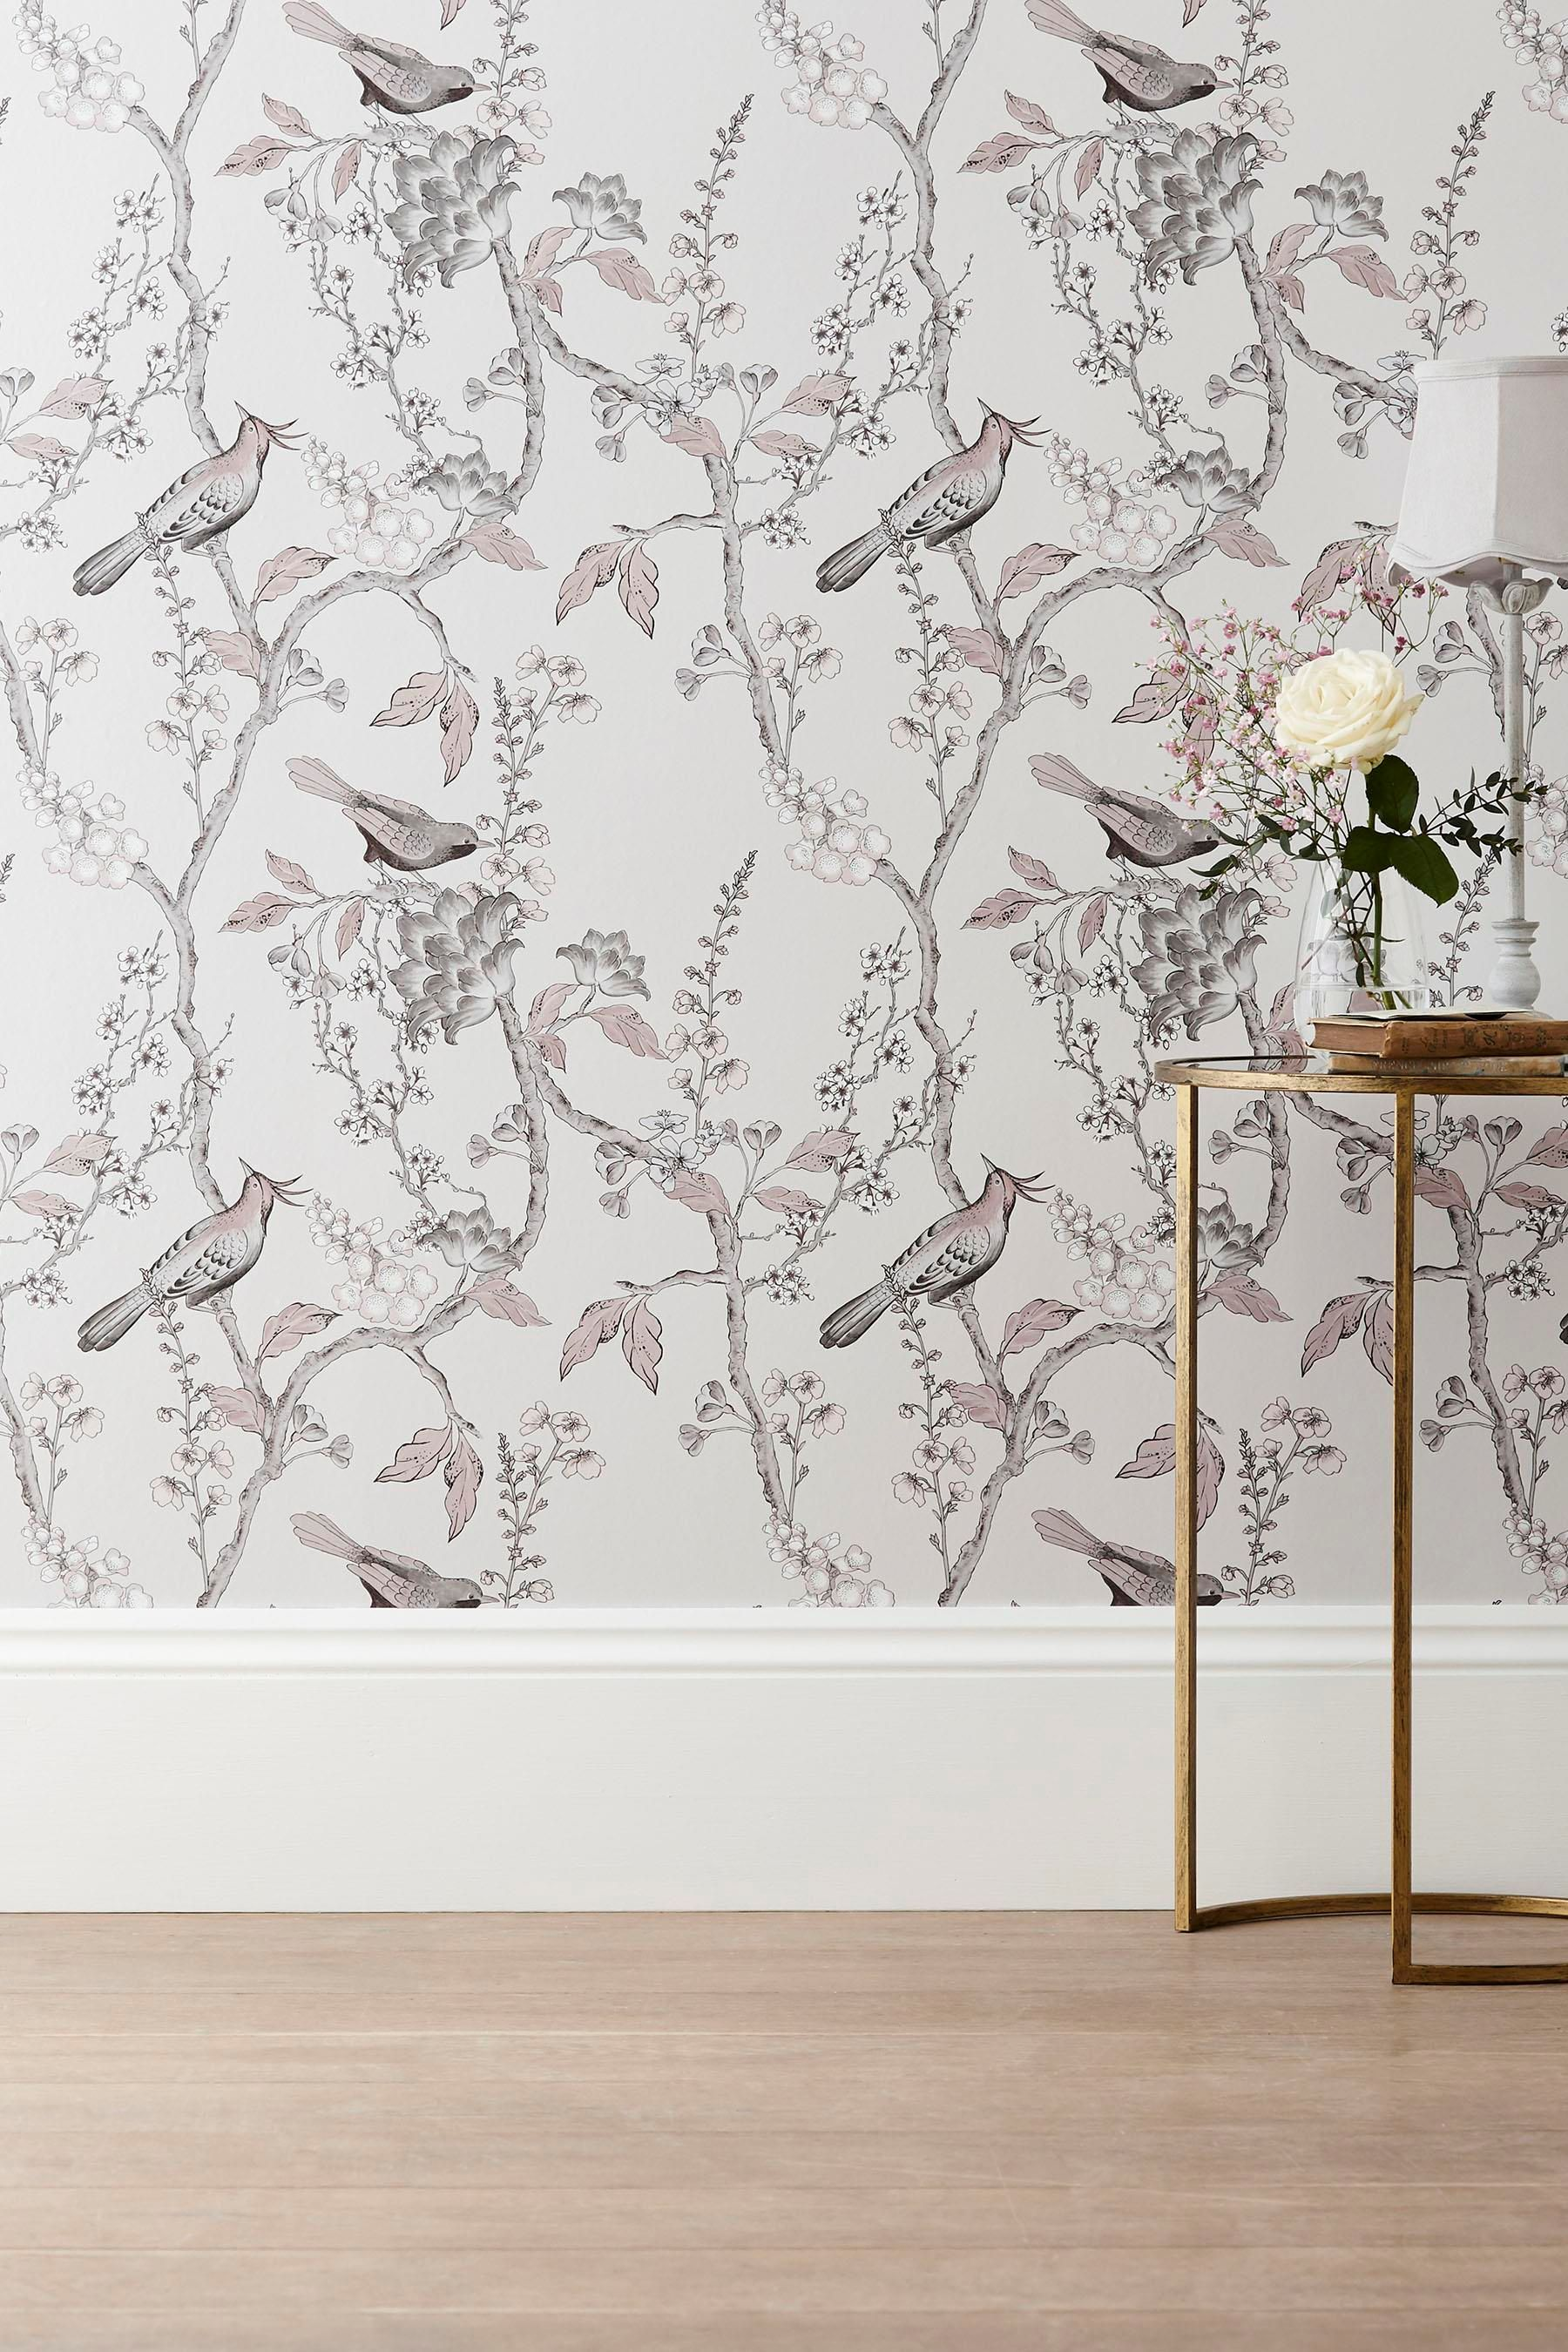 Buy Paste The Wall Natural Birds Wallpaper from the Next